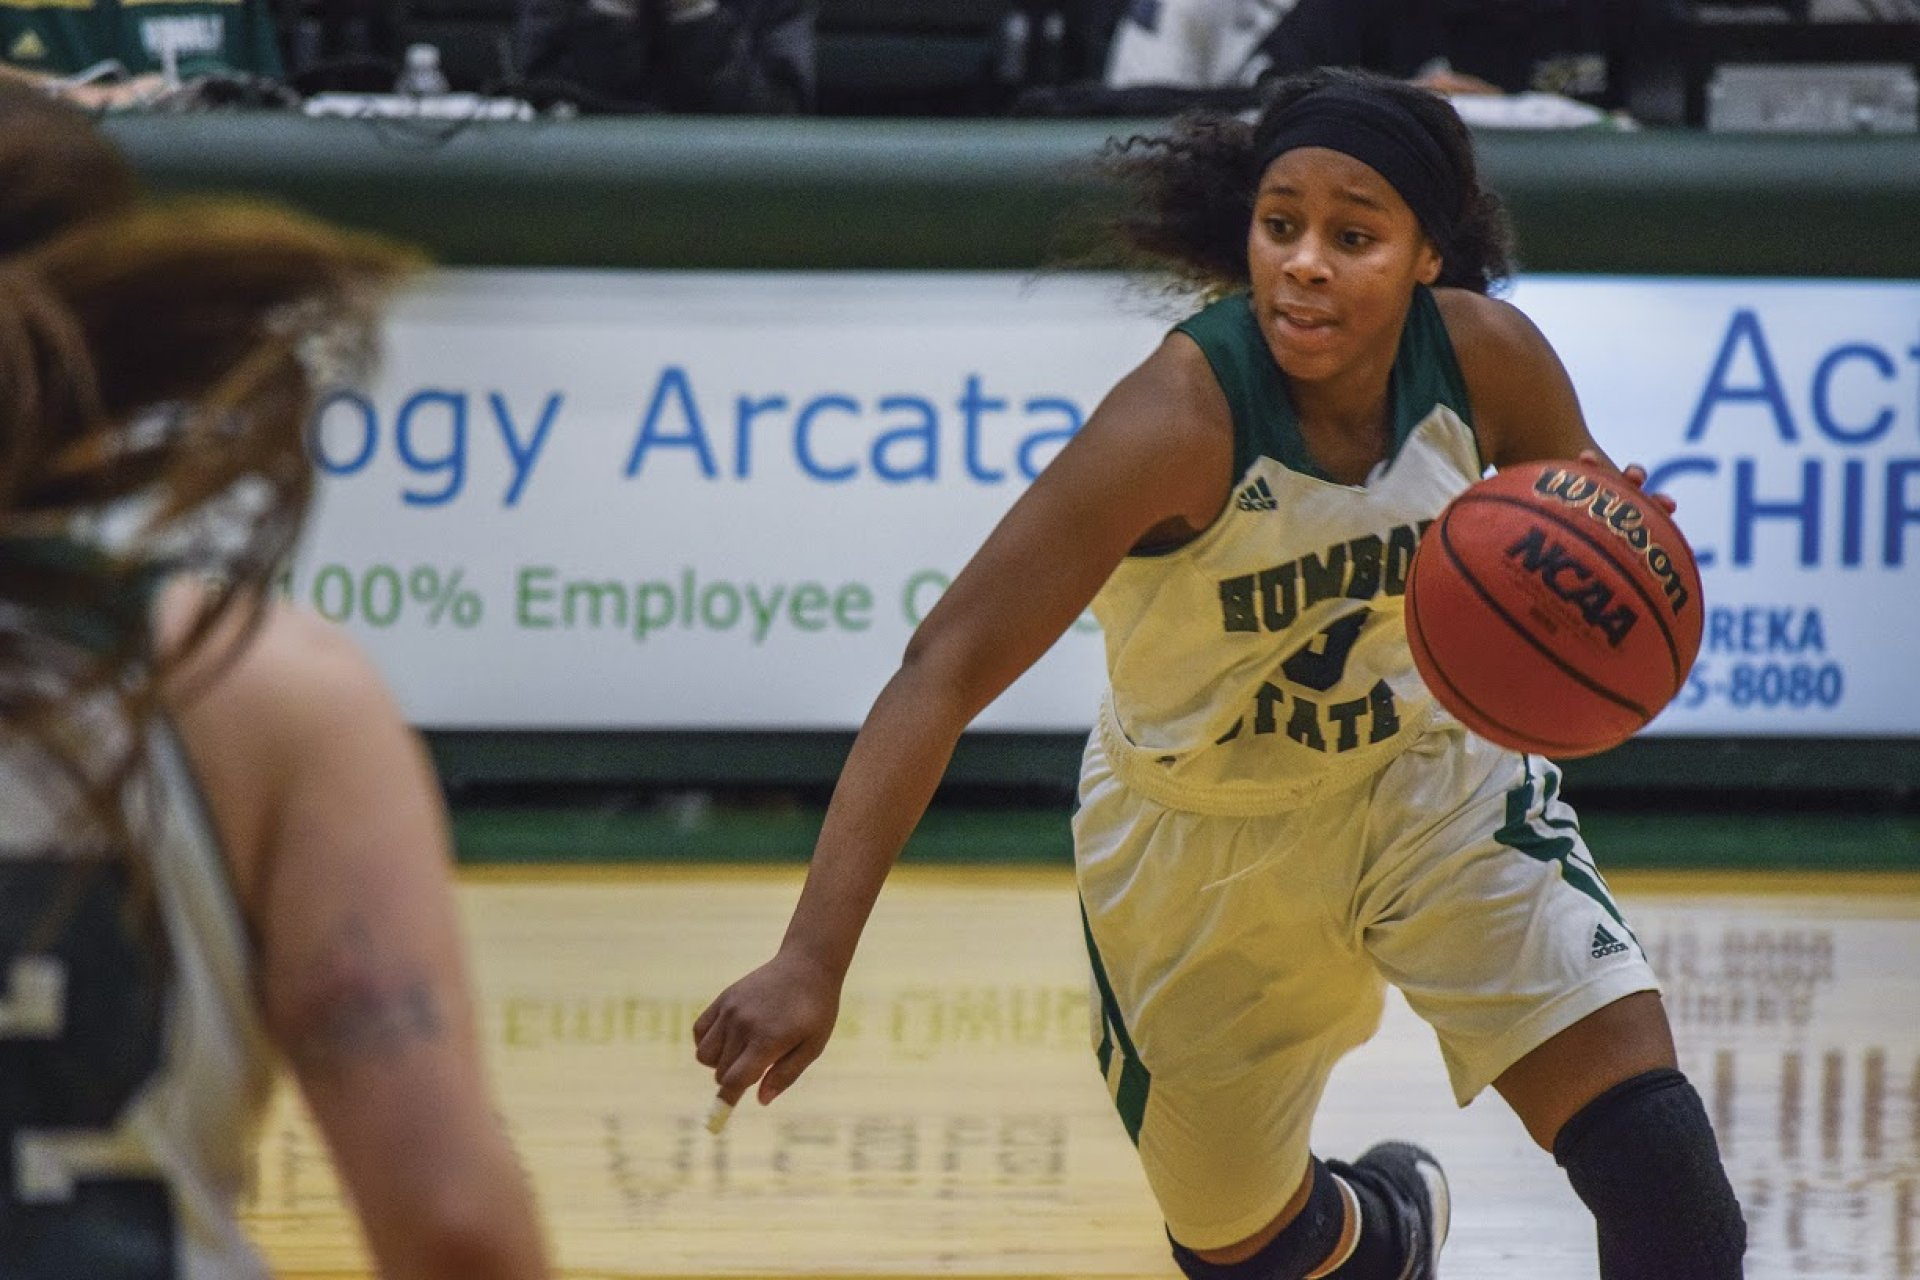 Jacks' guard Tyra Turner drives with the ball against a defender. | File photo by Alex Hasenstab